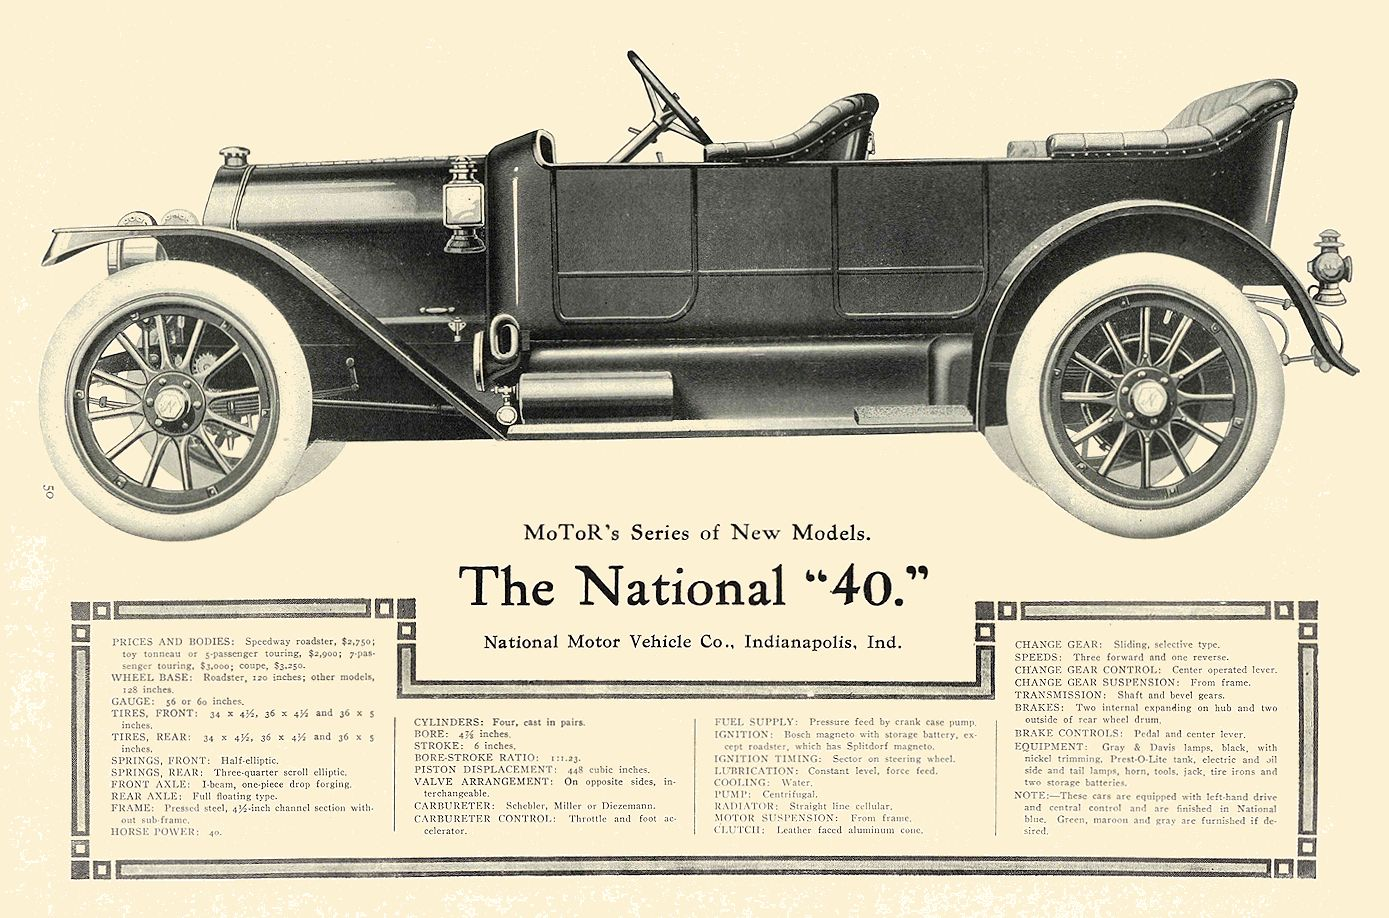 """1912 6 NATIONAL MoToR's Series of New Models The National """"40."""" National Motor Vehicle Co. Indianapolis, IND MoToR June 1912 9.5″x13.5″ page 50"""